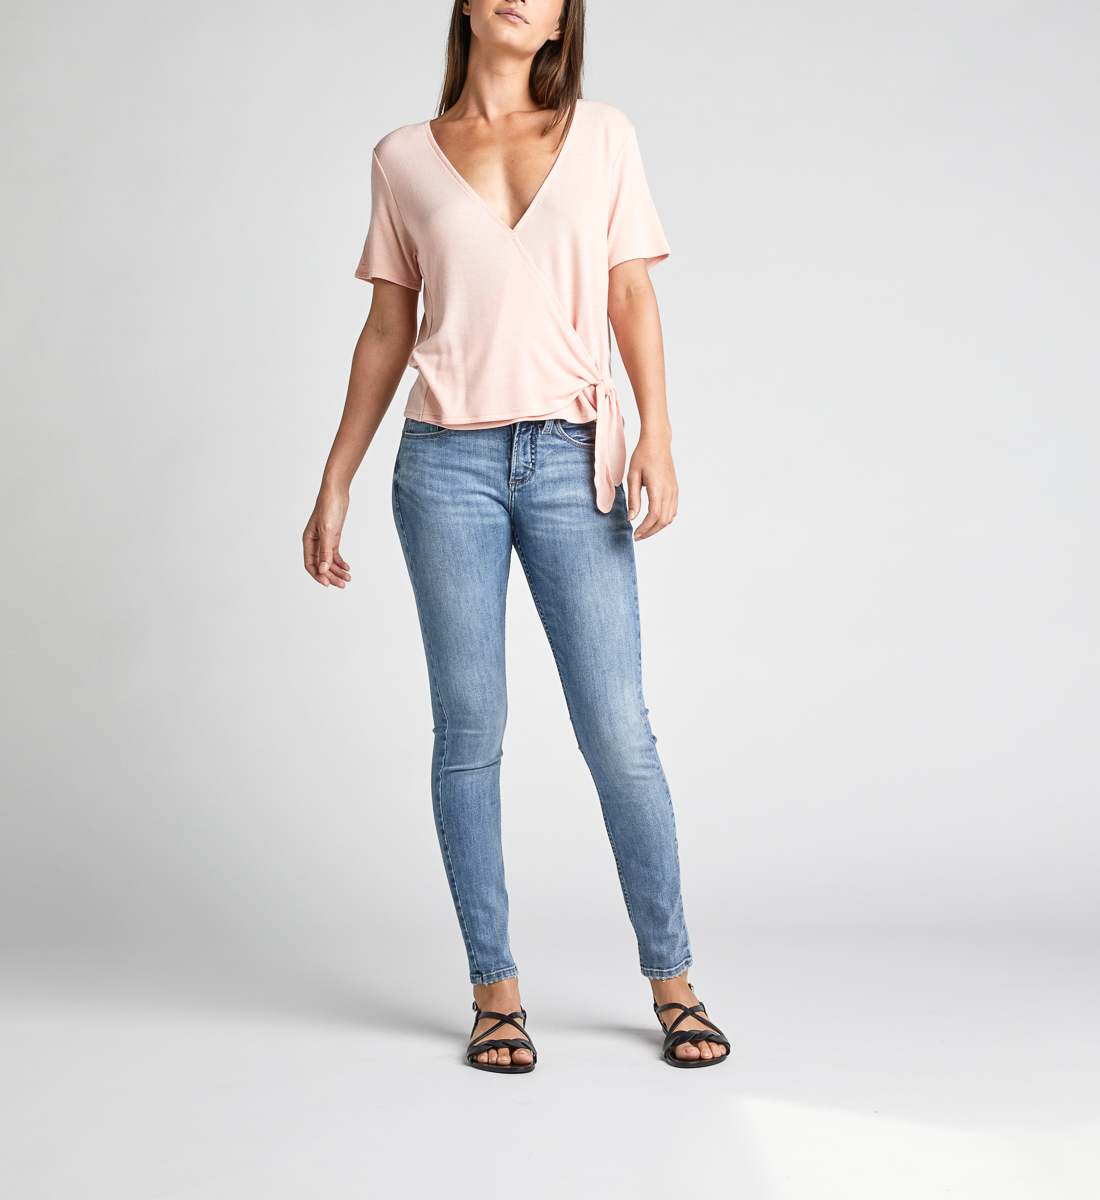 Adriel Side-Tie Wrap Tee,Light Rose Back